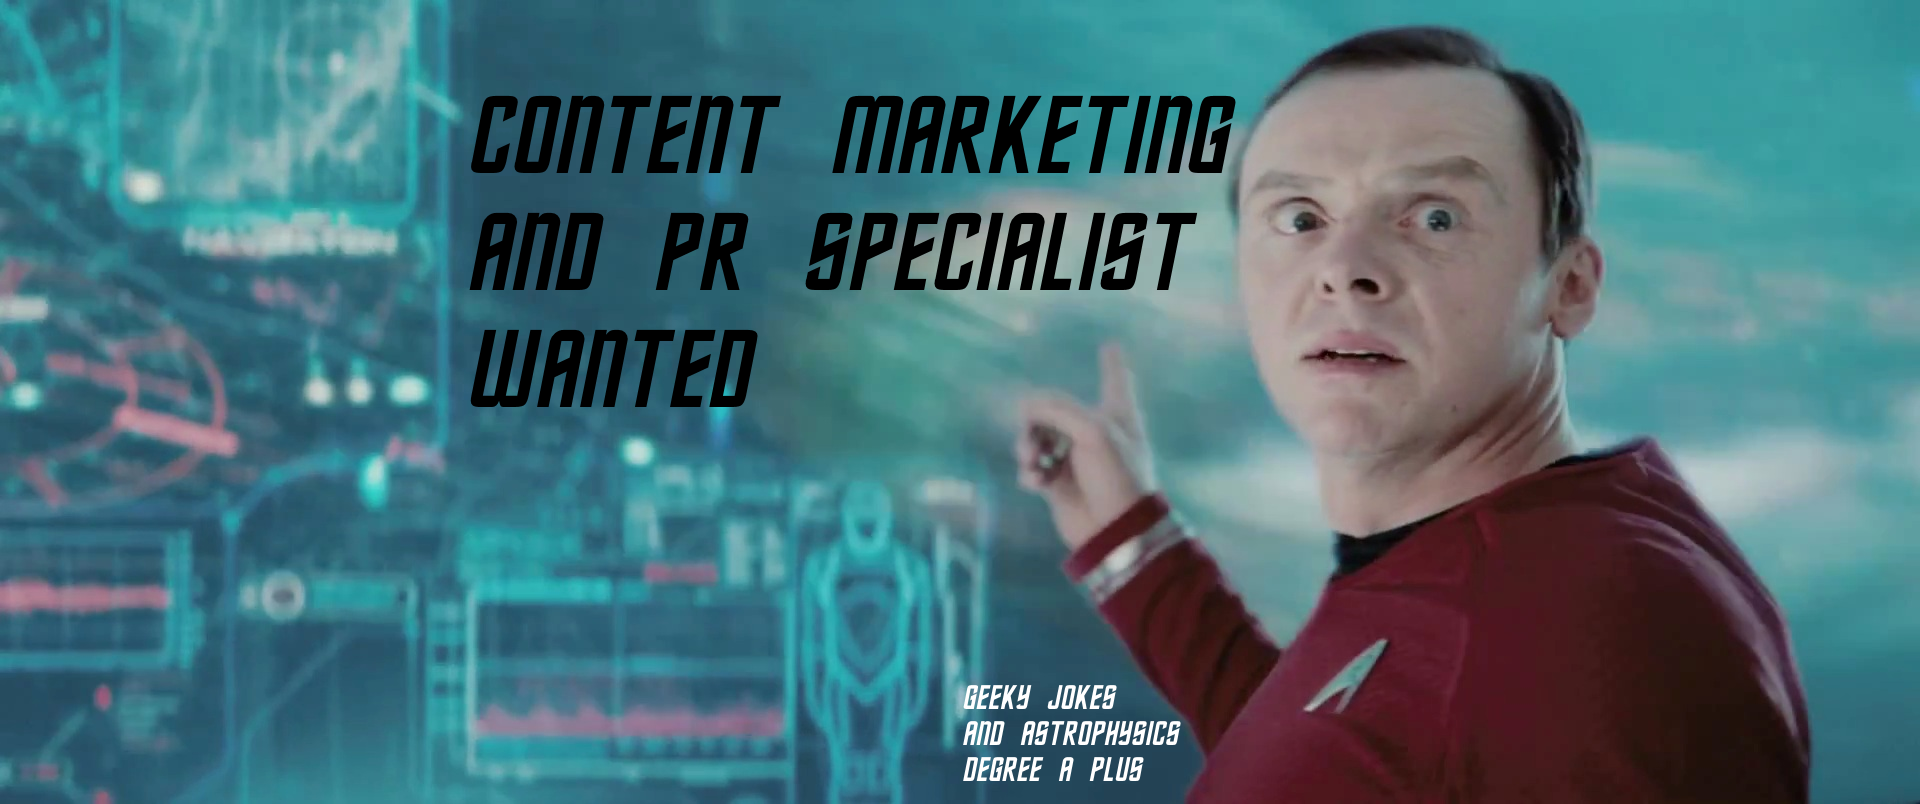 Danish PR/Content Marketing/Linkbuilding – Long-term part time contract – Remote. Flexible hours